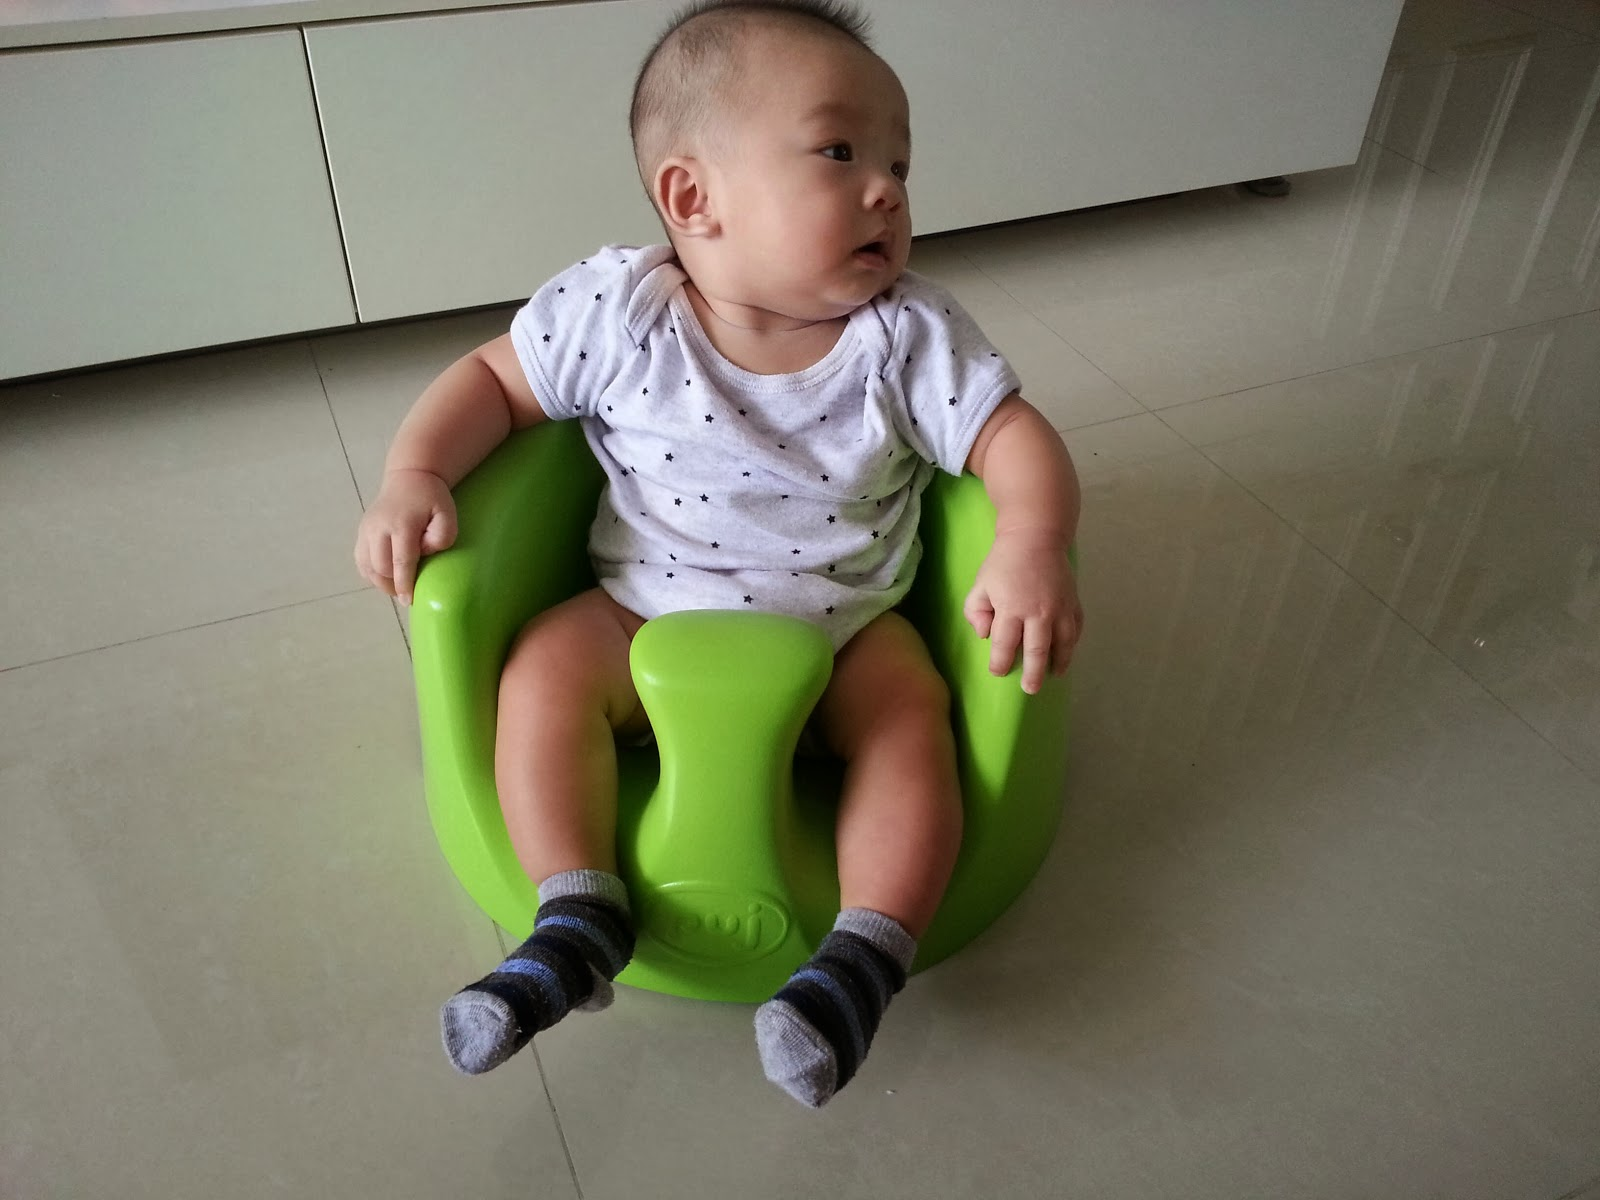 Top 10 Best Chairs For 3 Month Old Babies Comparison